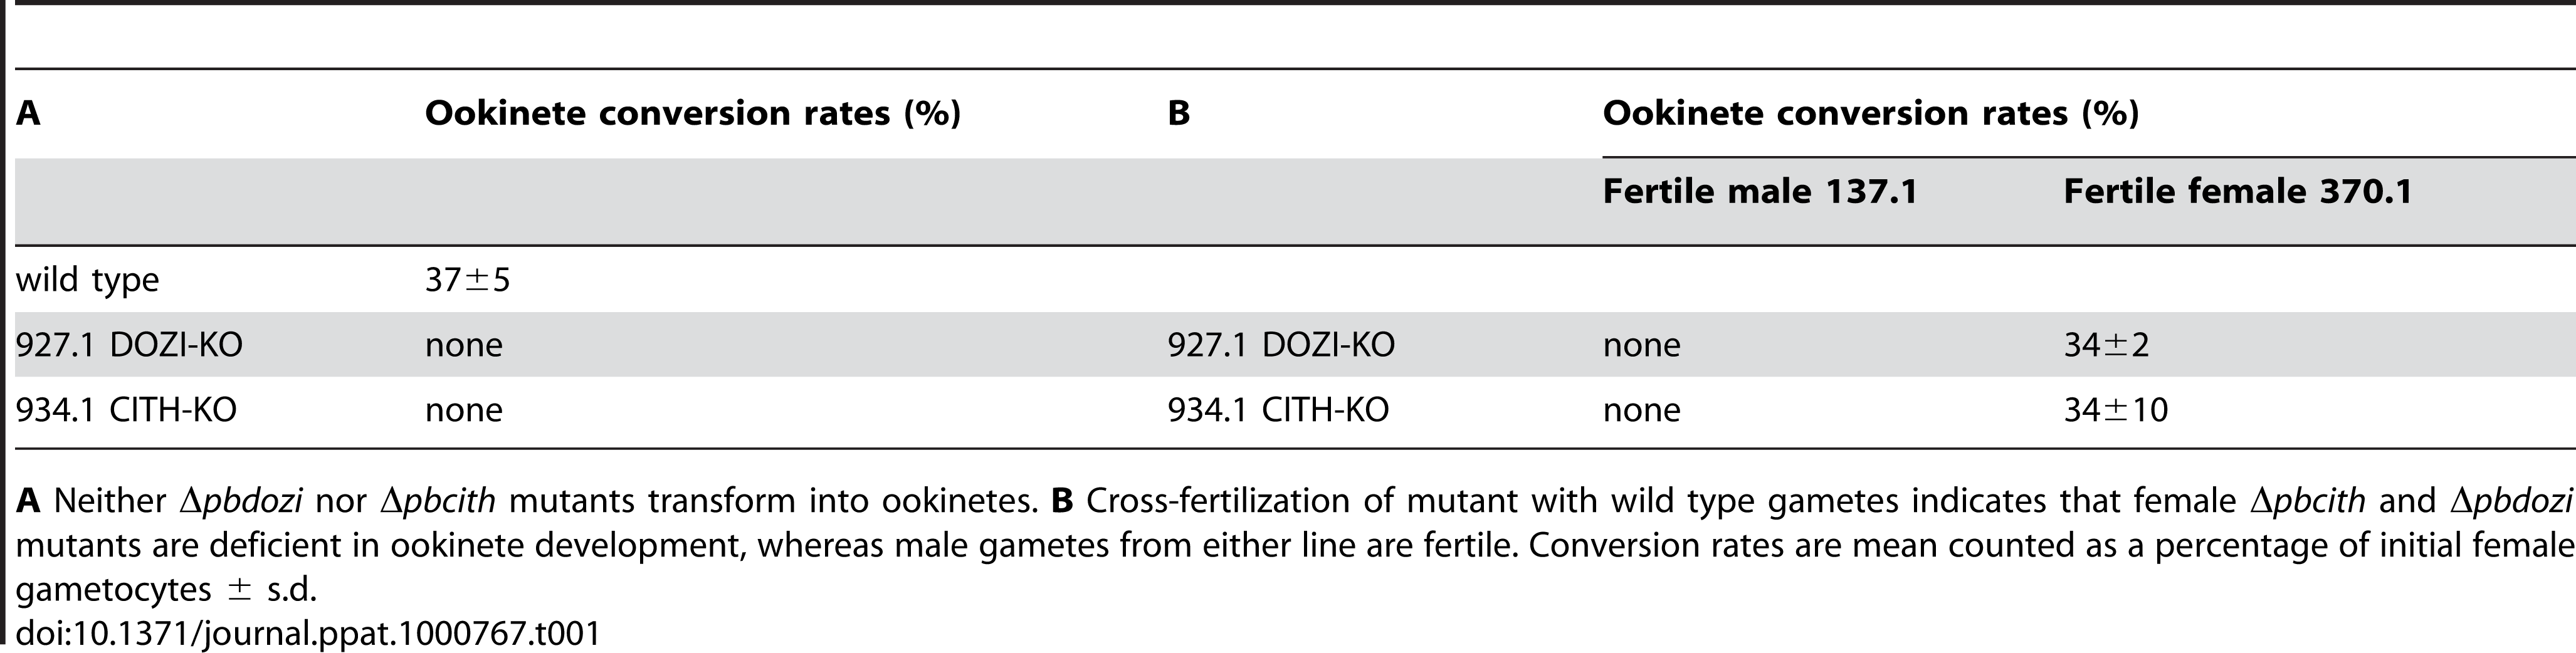 Ookinete formation in wild type and mutant parasite lines.